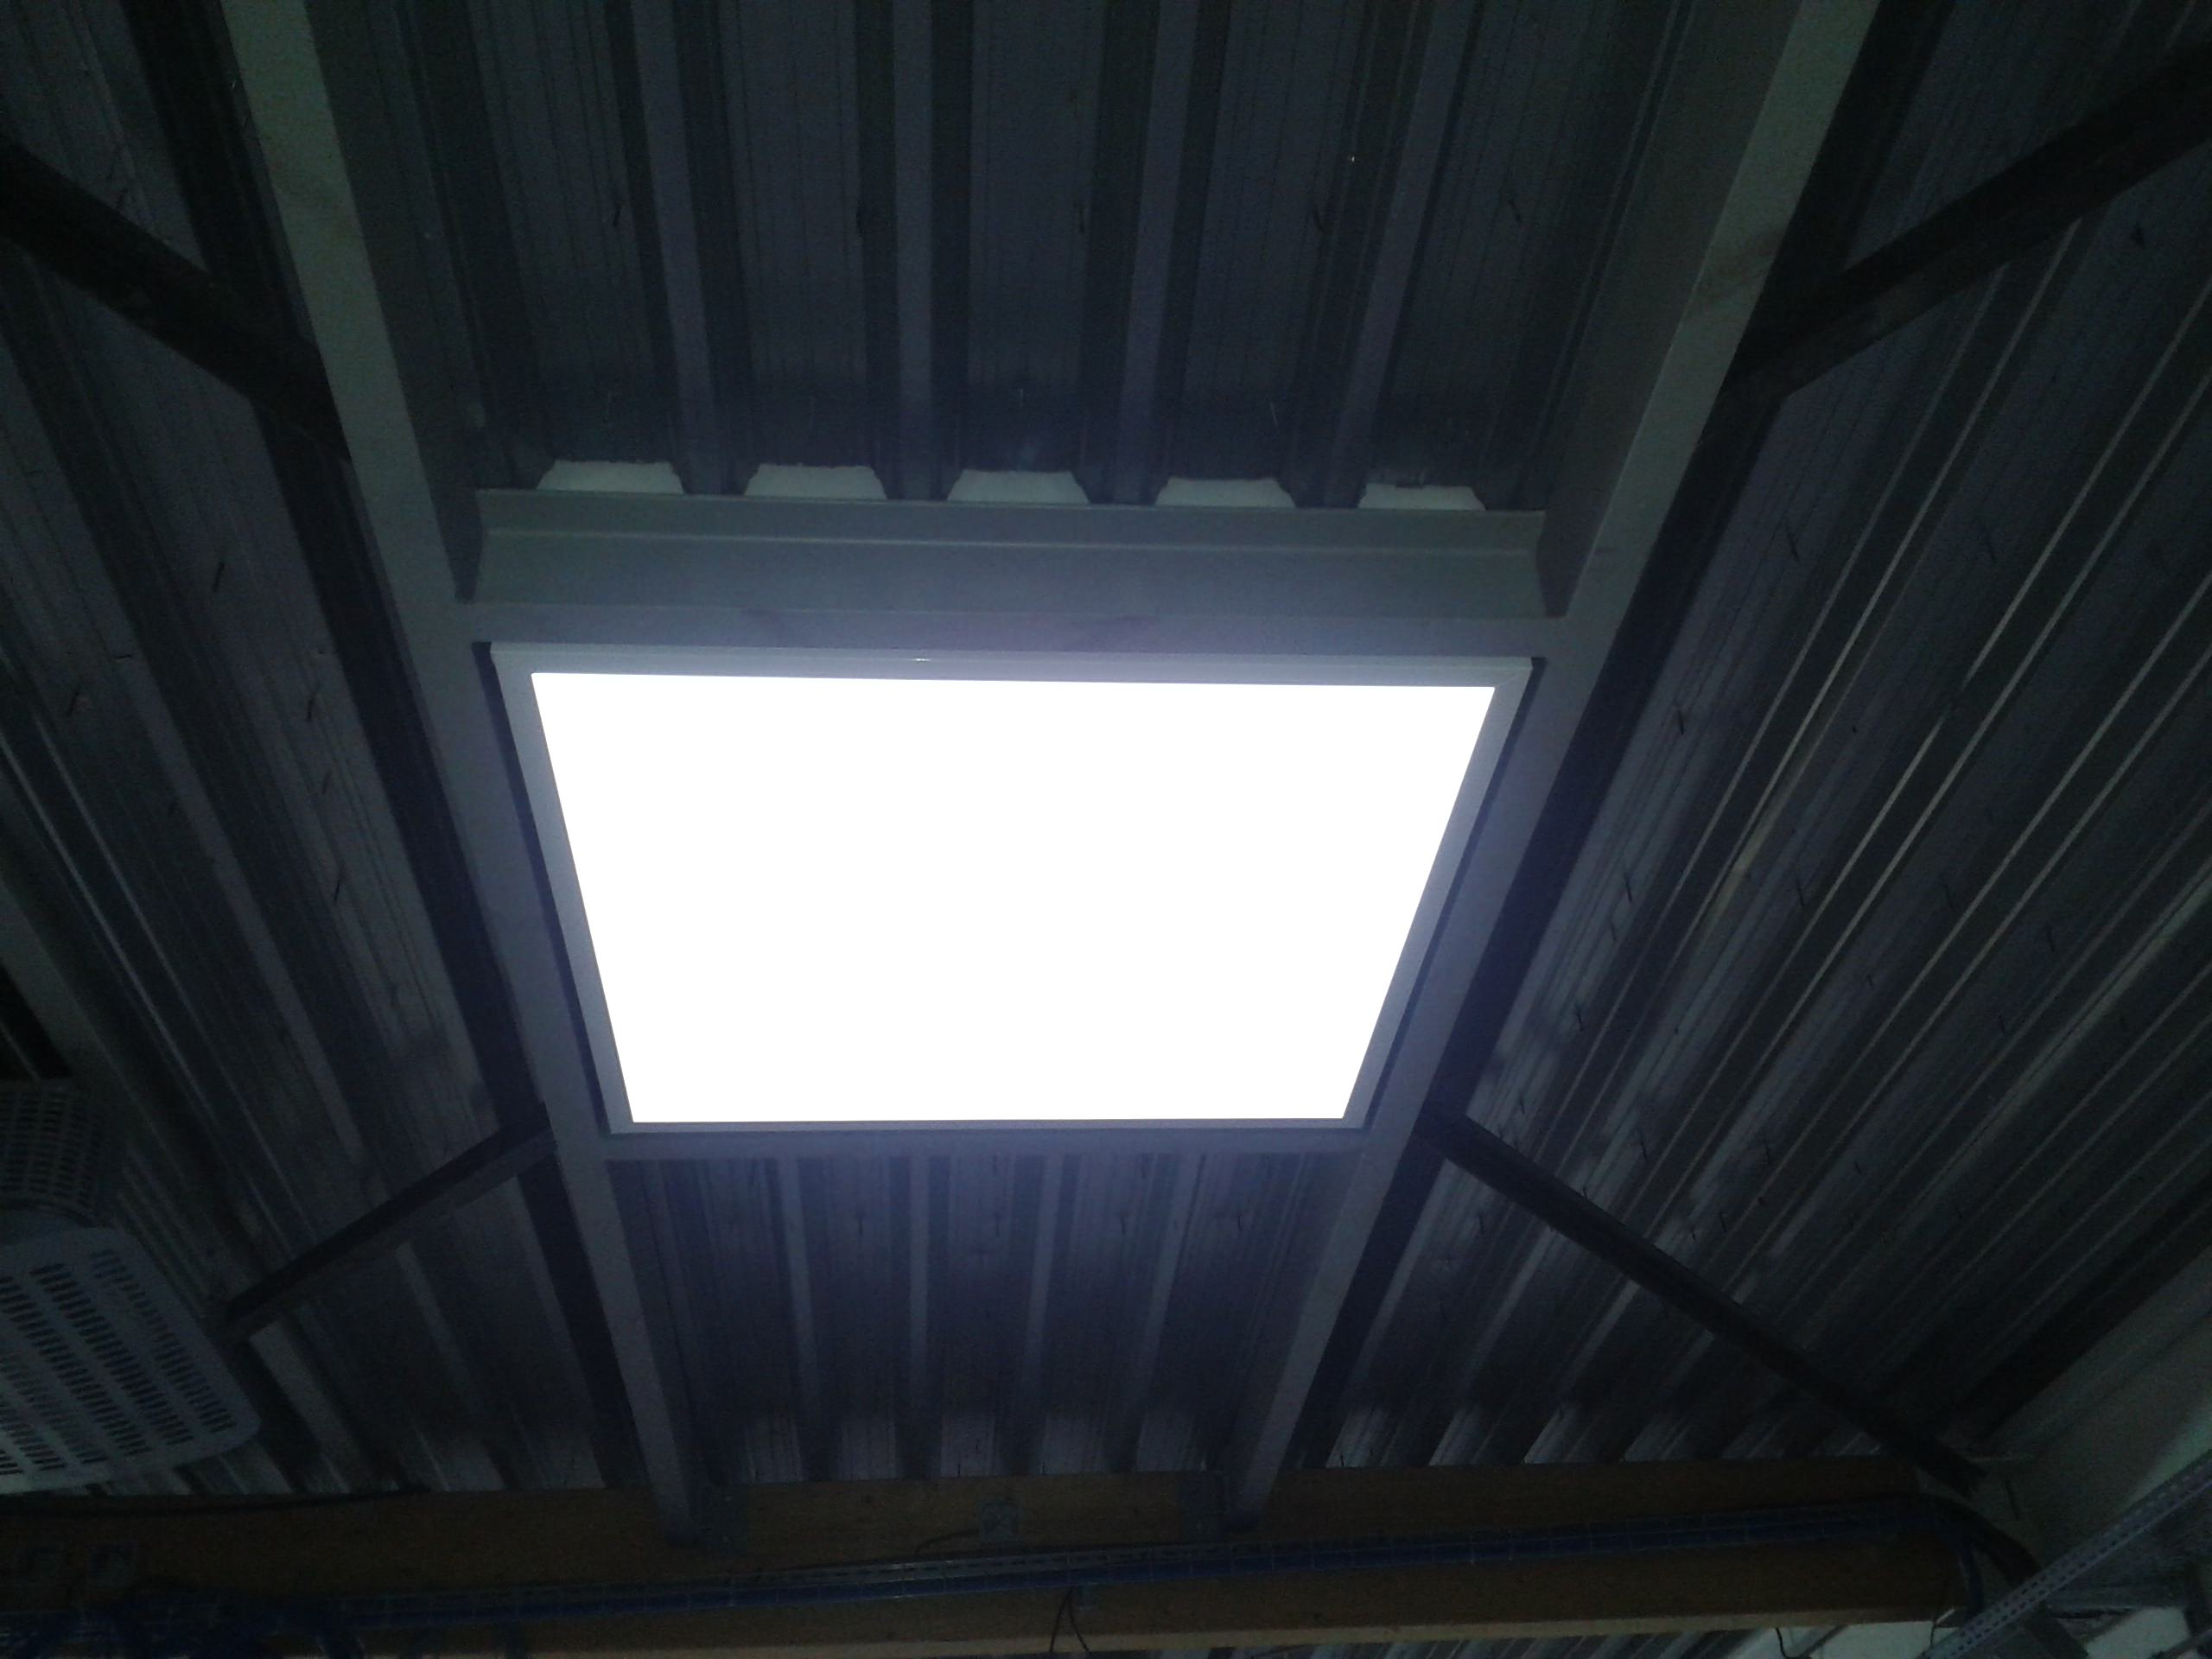 skylight-dom-bio-planet-roeselare-05